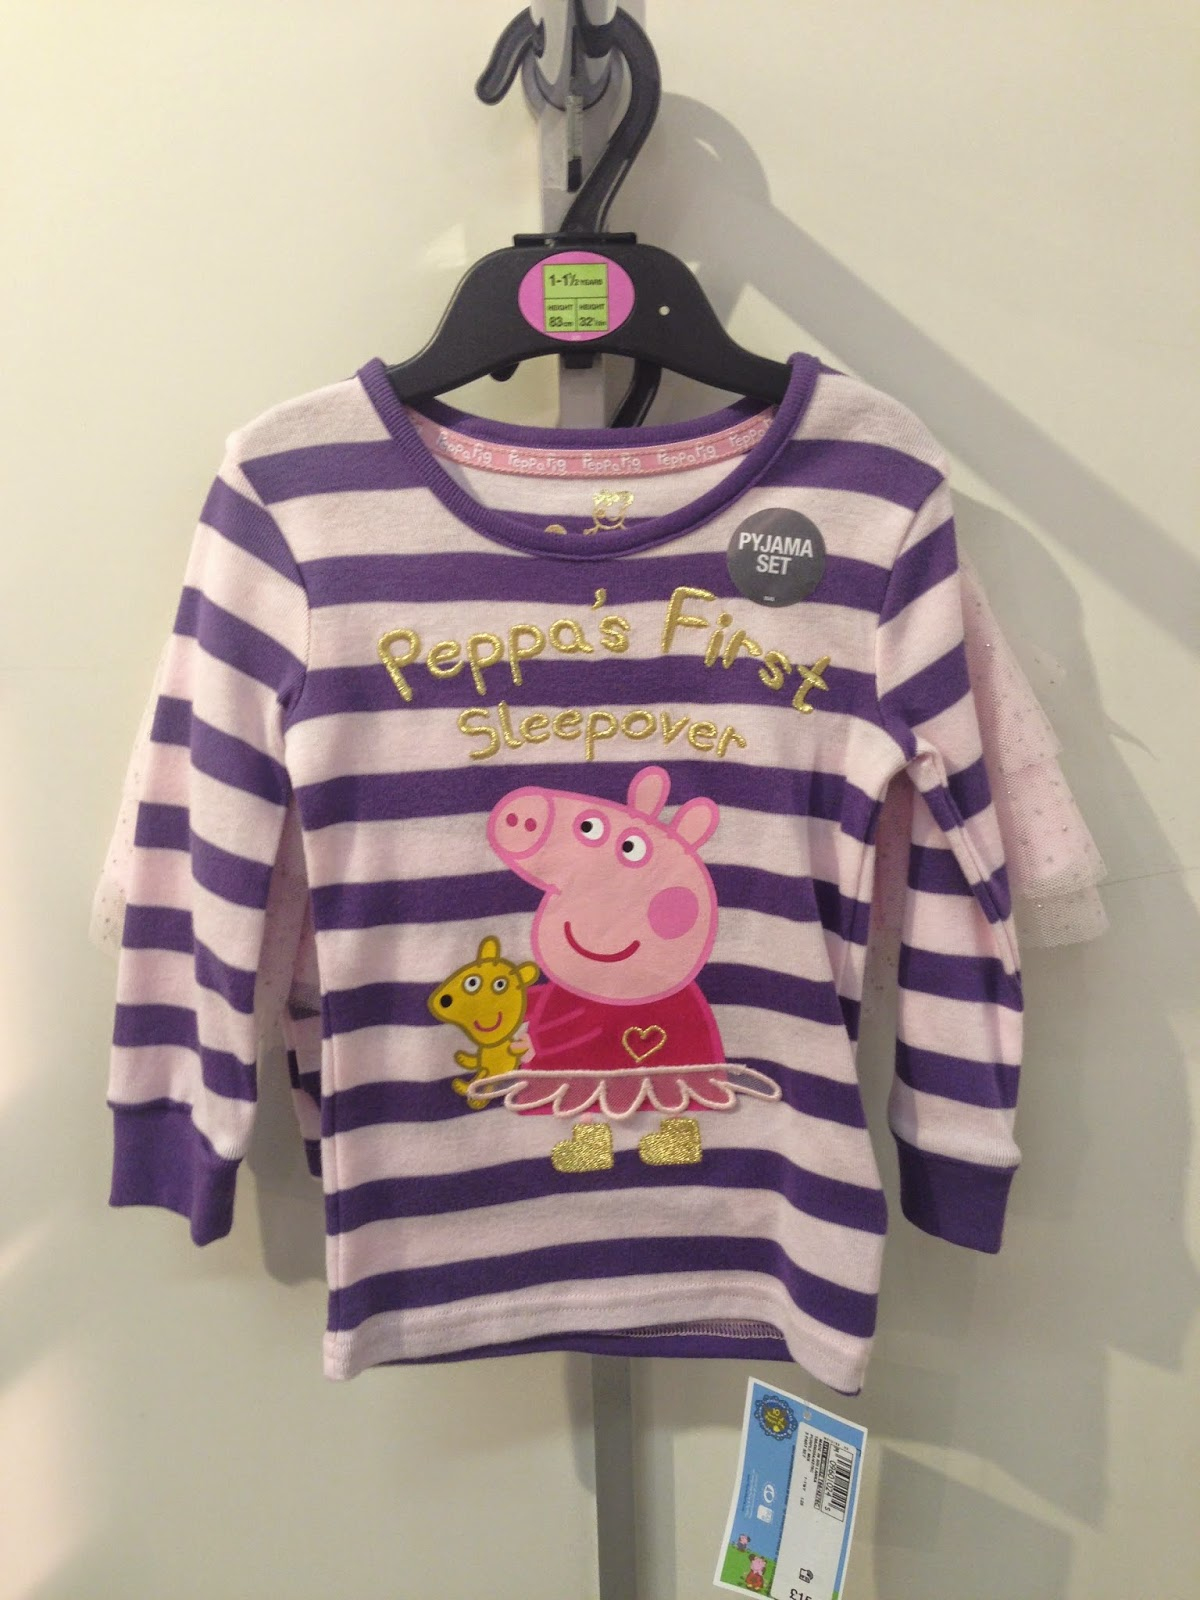 Product Of The Week Marks Spencer Teesside Park Peppa Pig Peppas First Sleepover This Weeks Is 3 Different Kidswear Items From Range Celebrating 10 Years Muddy Puddles So Ms Are Joining In